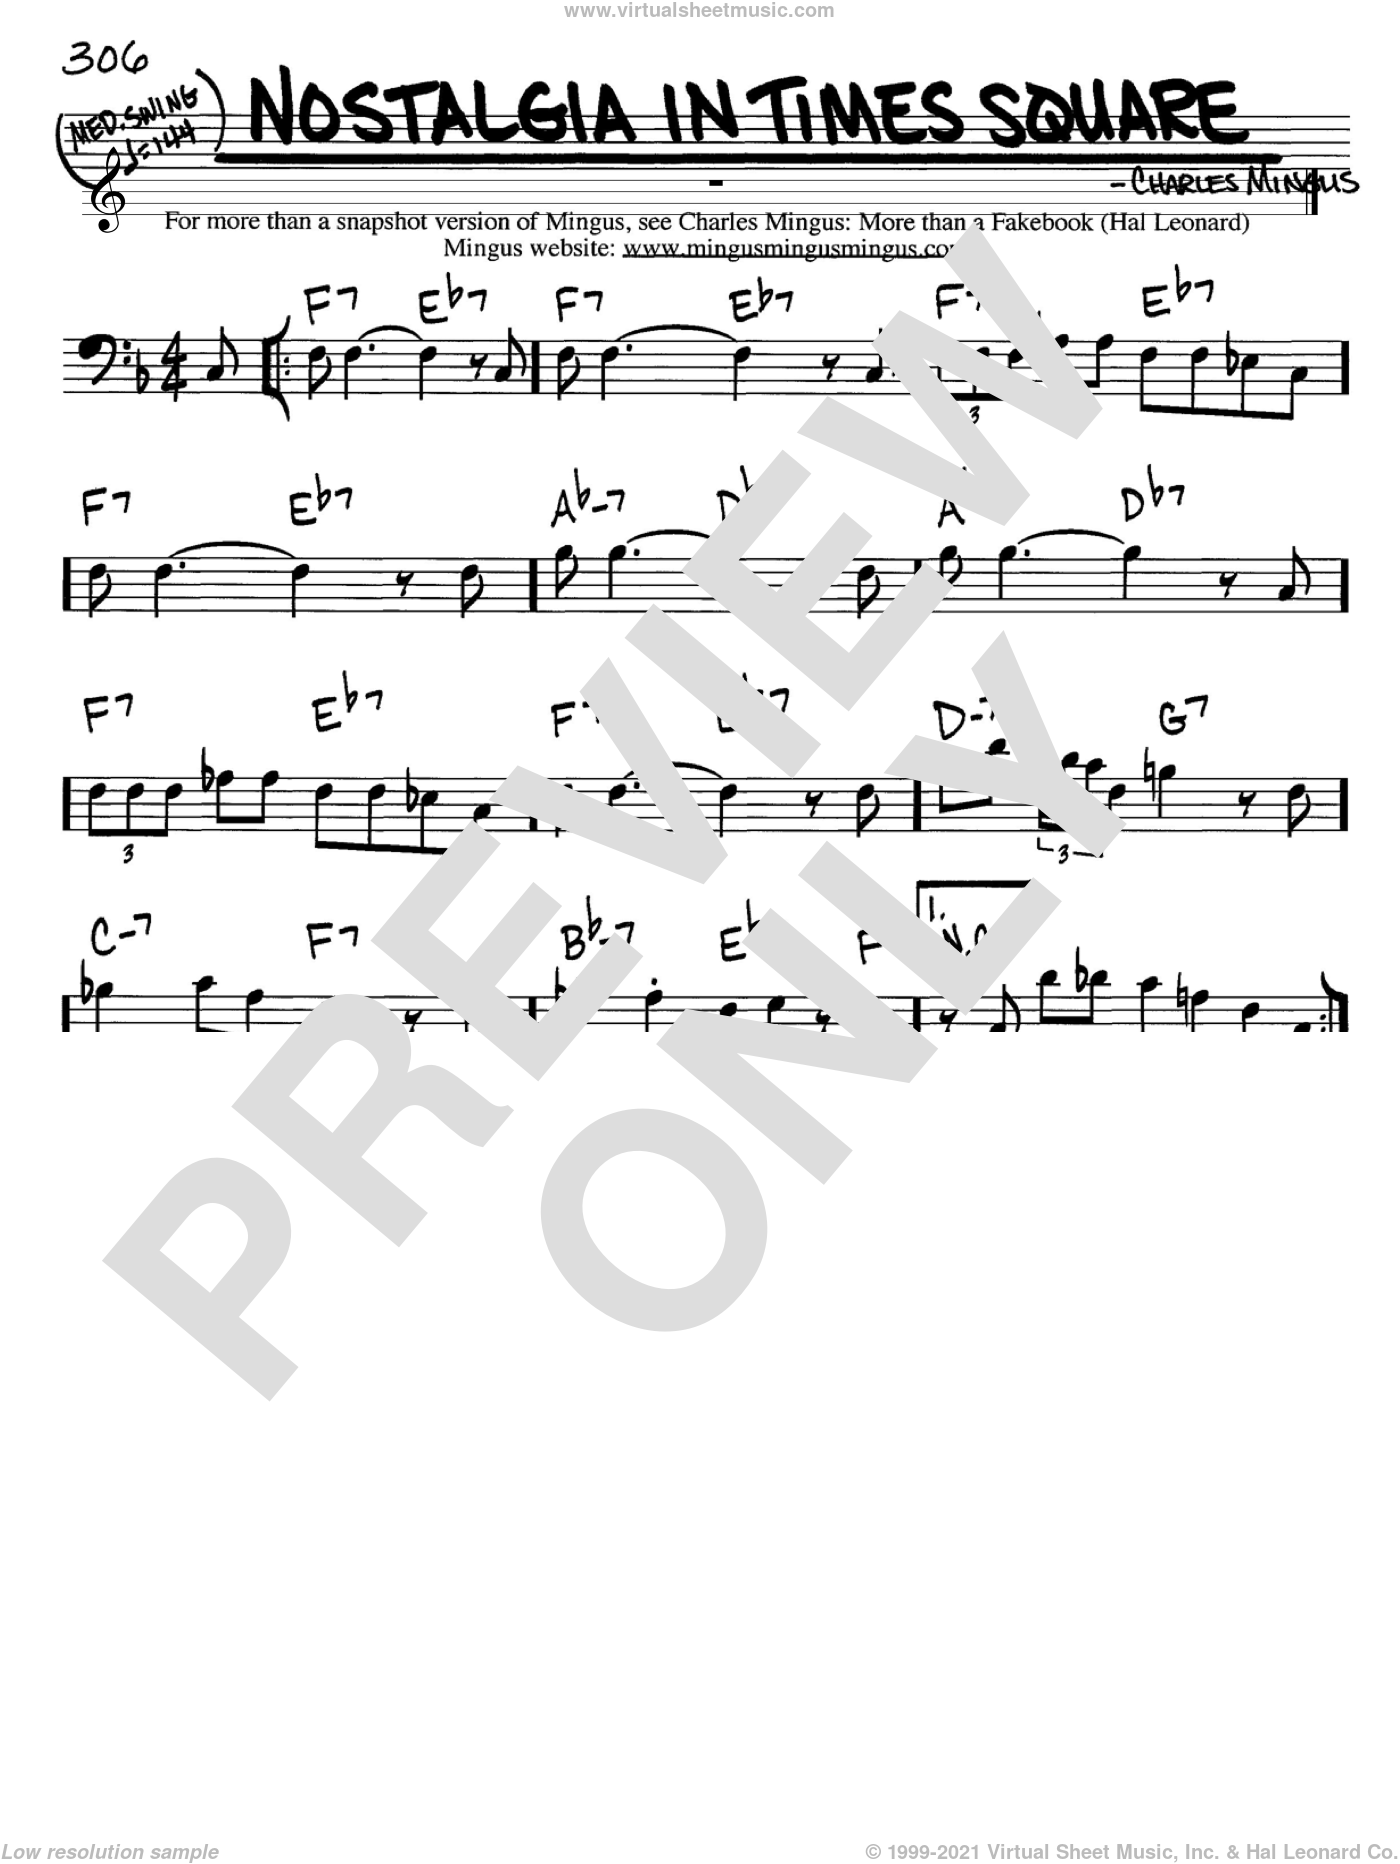 Nostalgia In Times Square sheet music for voice and other instruments (Bass Clef ) by Charles Mingus. Score Image Preview.